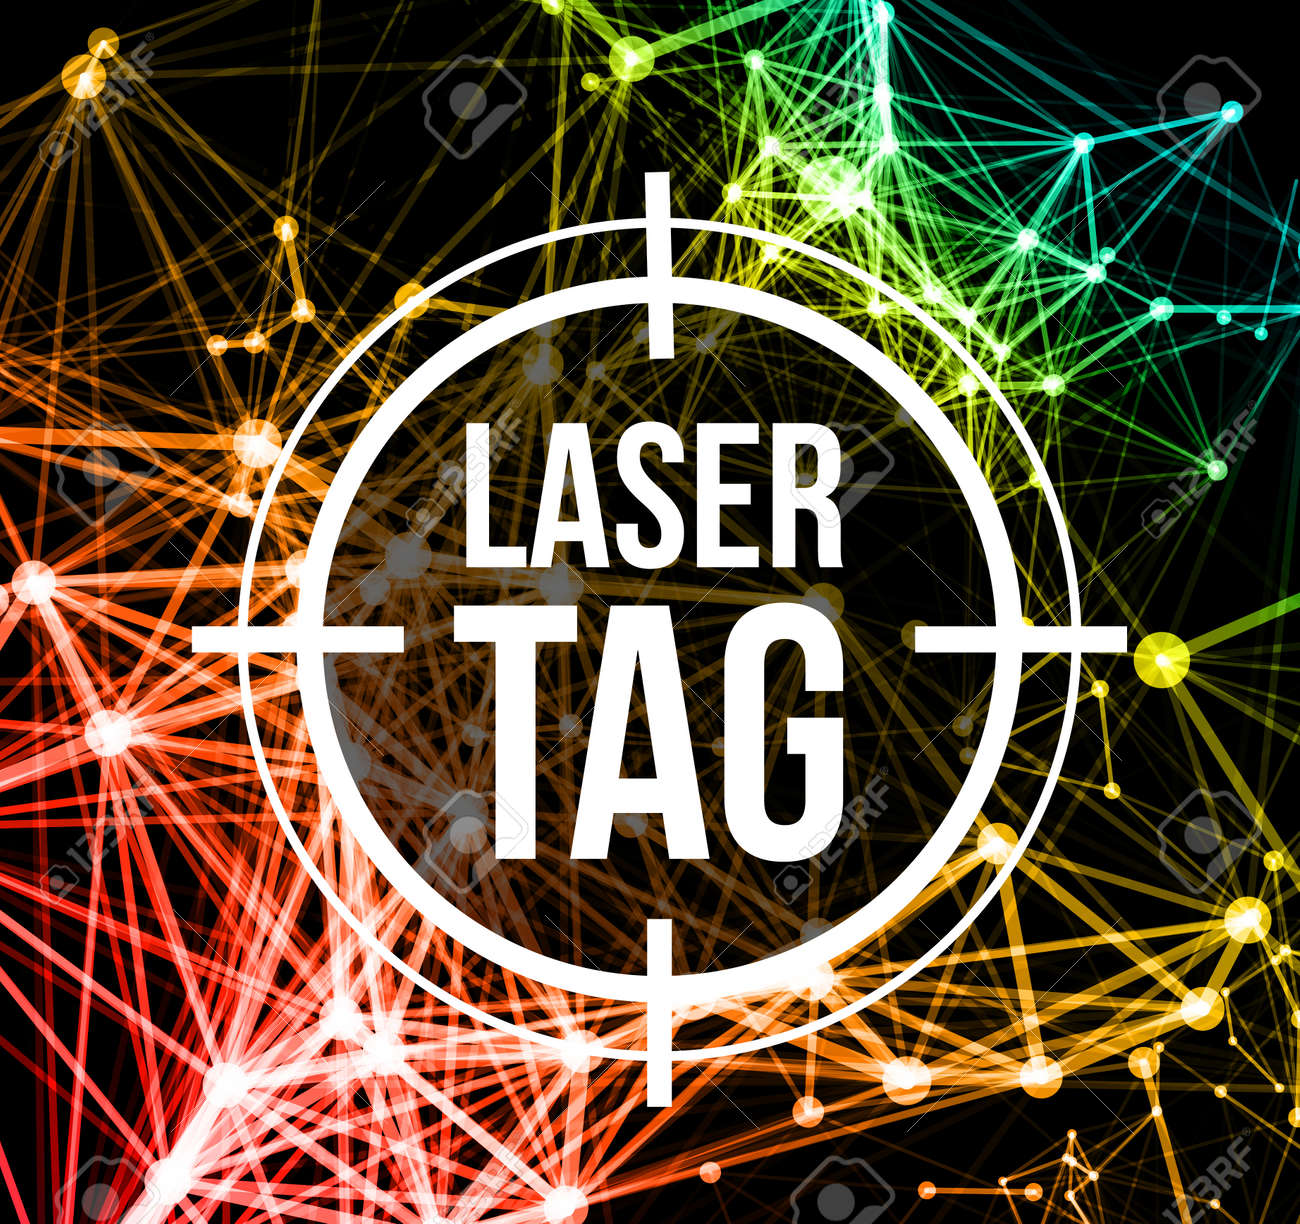 Laser tag with target.on a background of multi-colored laser beams. Vector illustration - 61585908